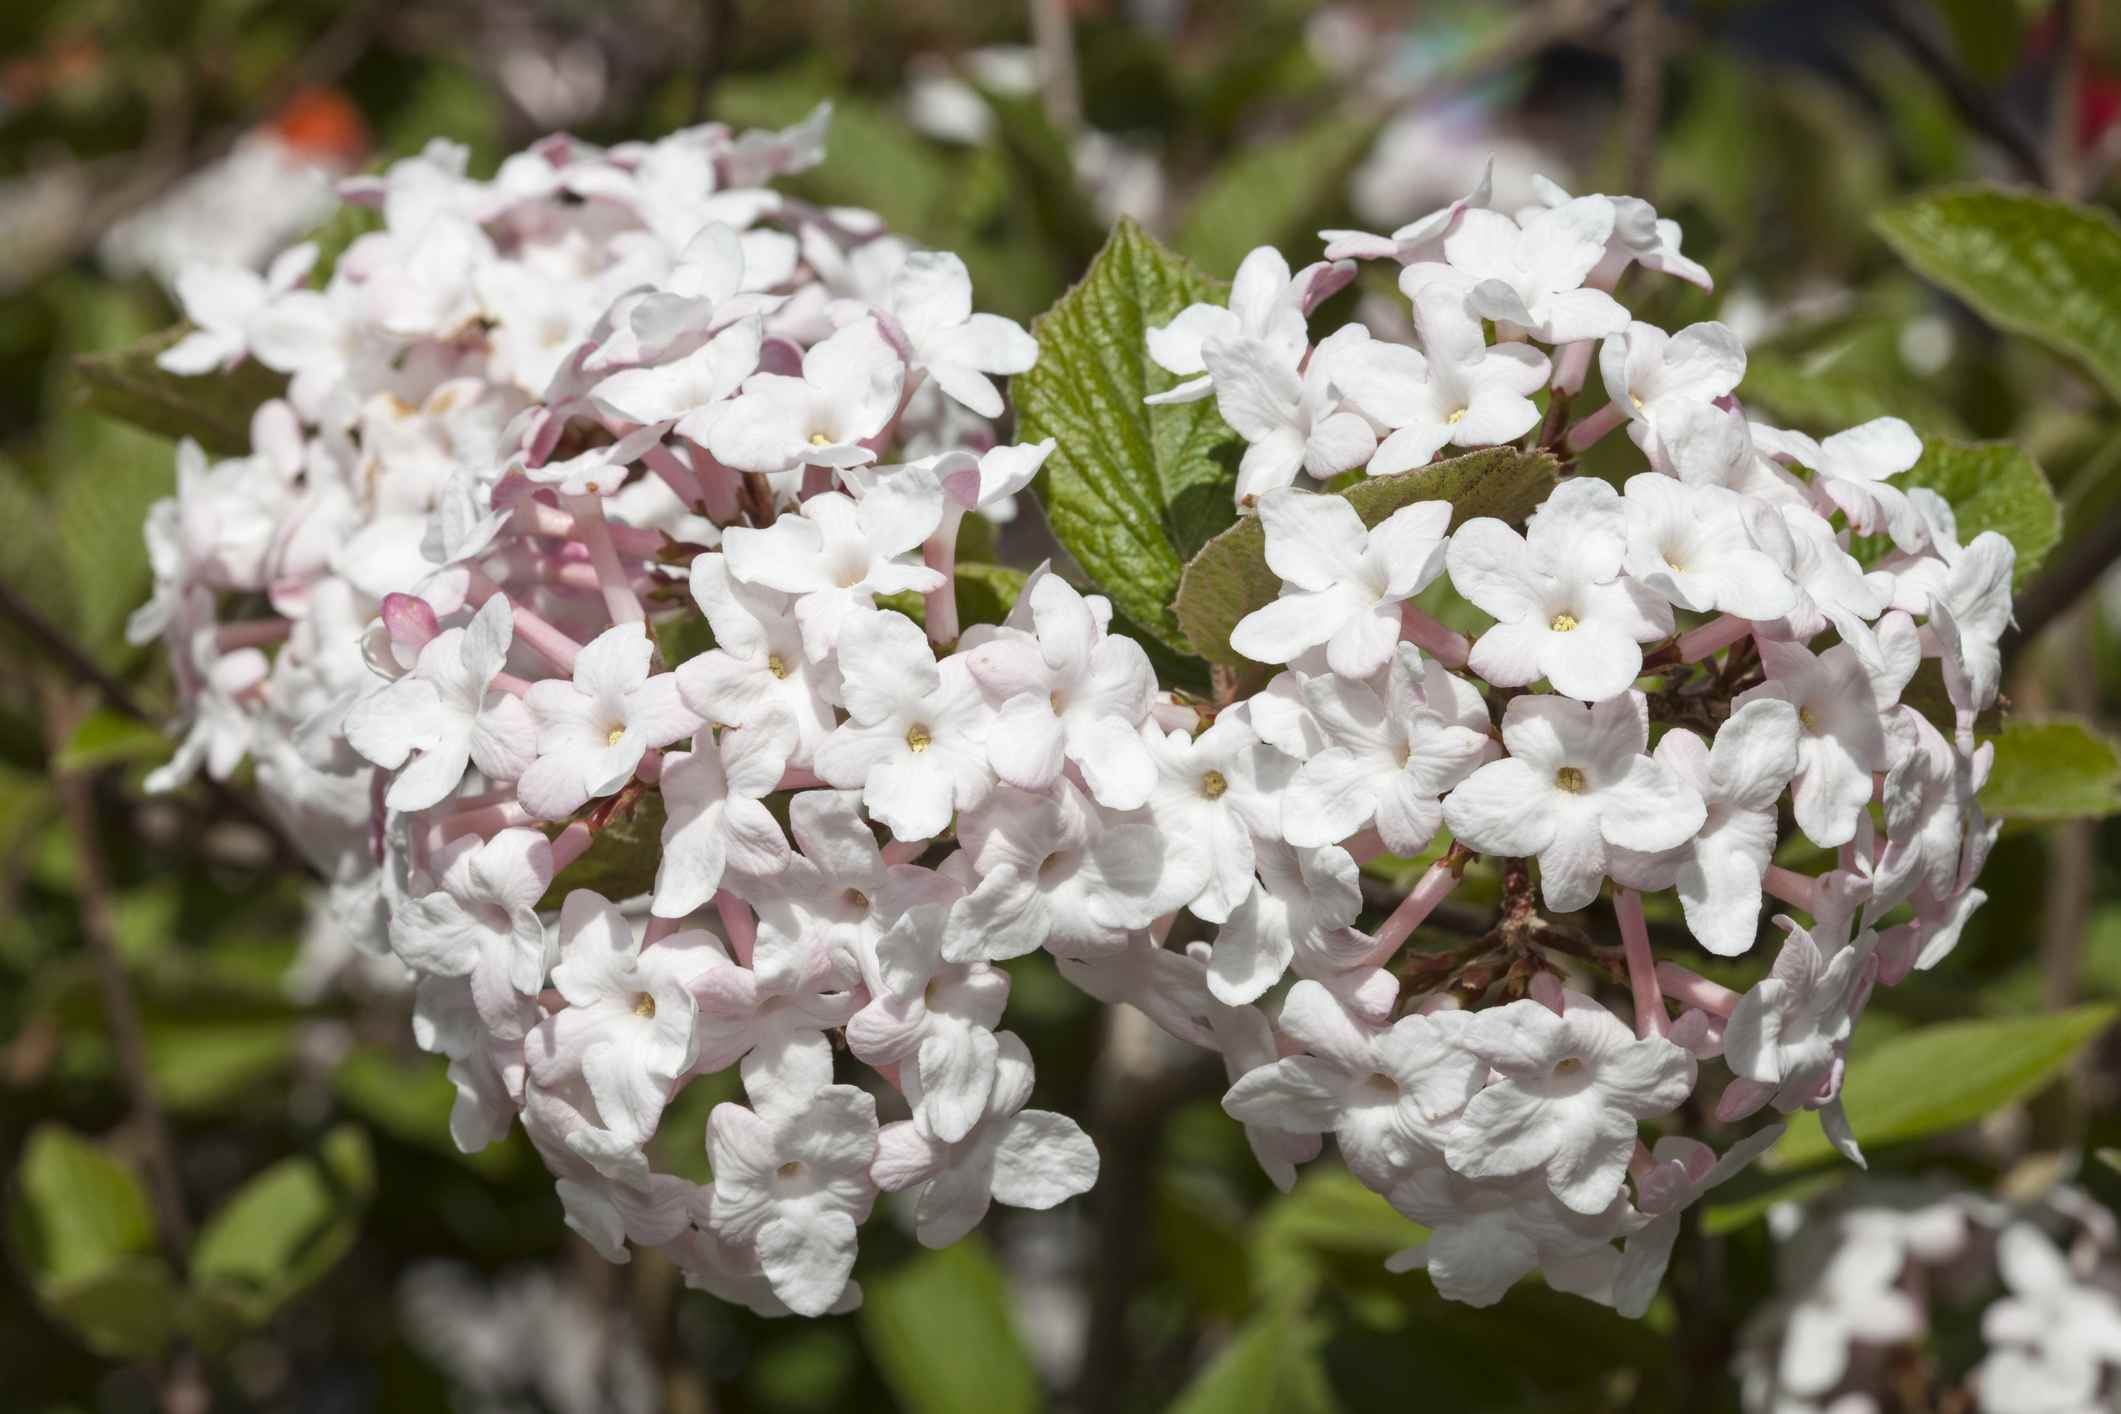 Closeup of two flower clusters from a Korean spice viburnum bush.